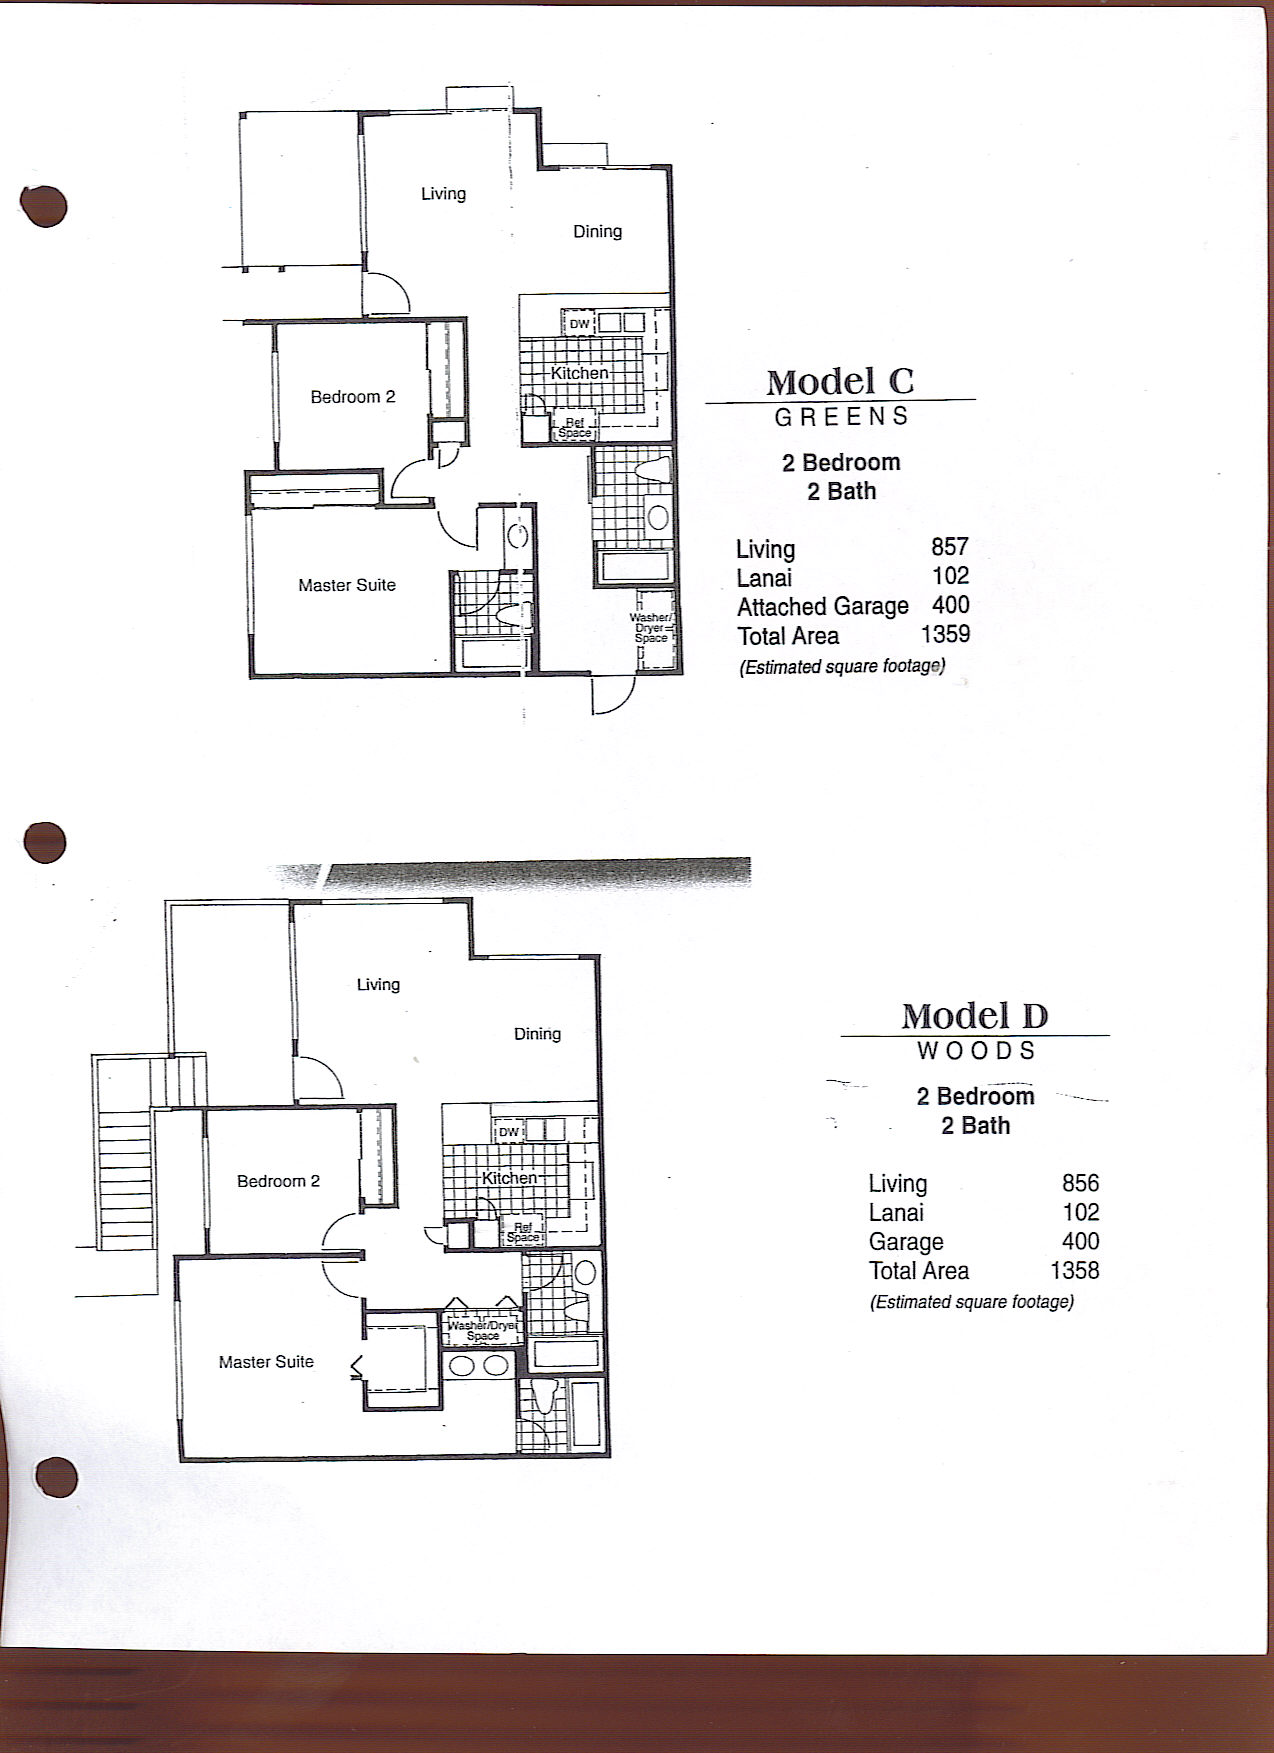 Model C - Greens 2 bedroom / 2 bathroom Living - 857 sq. ft. Lanai - 102 sq. ft. Attached Garage - 400 sq. ft. Total Area - 1,359 sq. ft. Model D - Woods 2 bedroom / 2 bathroom Living - 856 sq. ft. Lanai - 102 sq. ft. Garage - 400 sq. ft. Total Area - 1358 sq. ft.